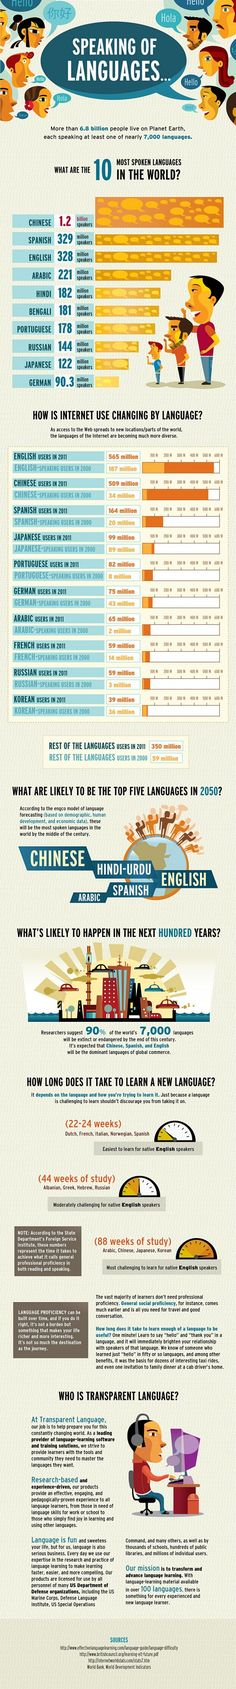 INFOGRAPHIC: WHAT'S THE STATE OF LANGUAGE IN OUR WORLD?